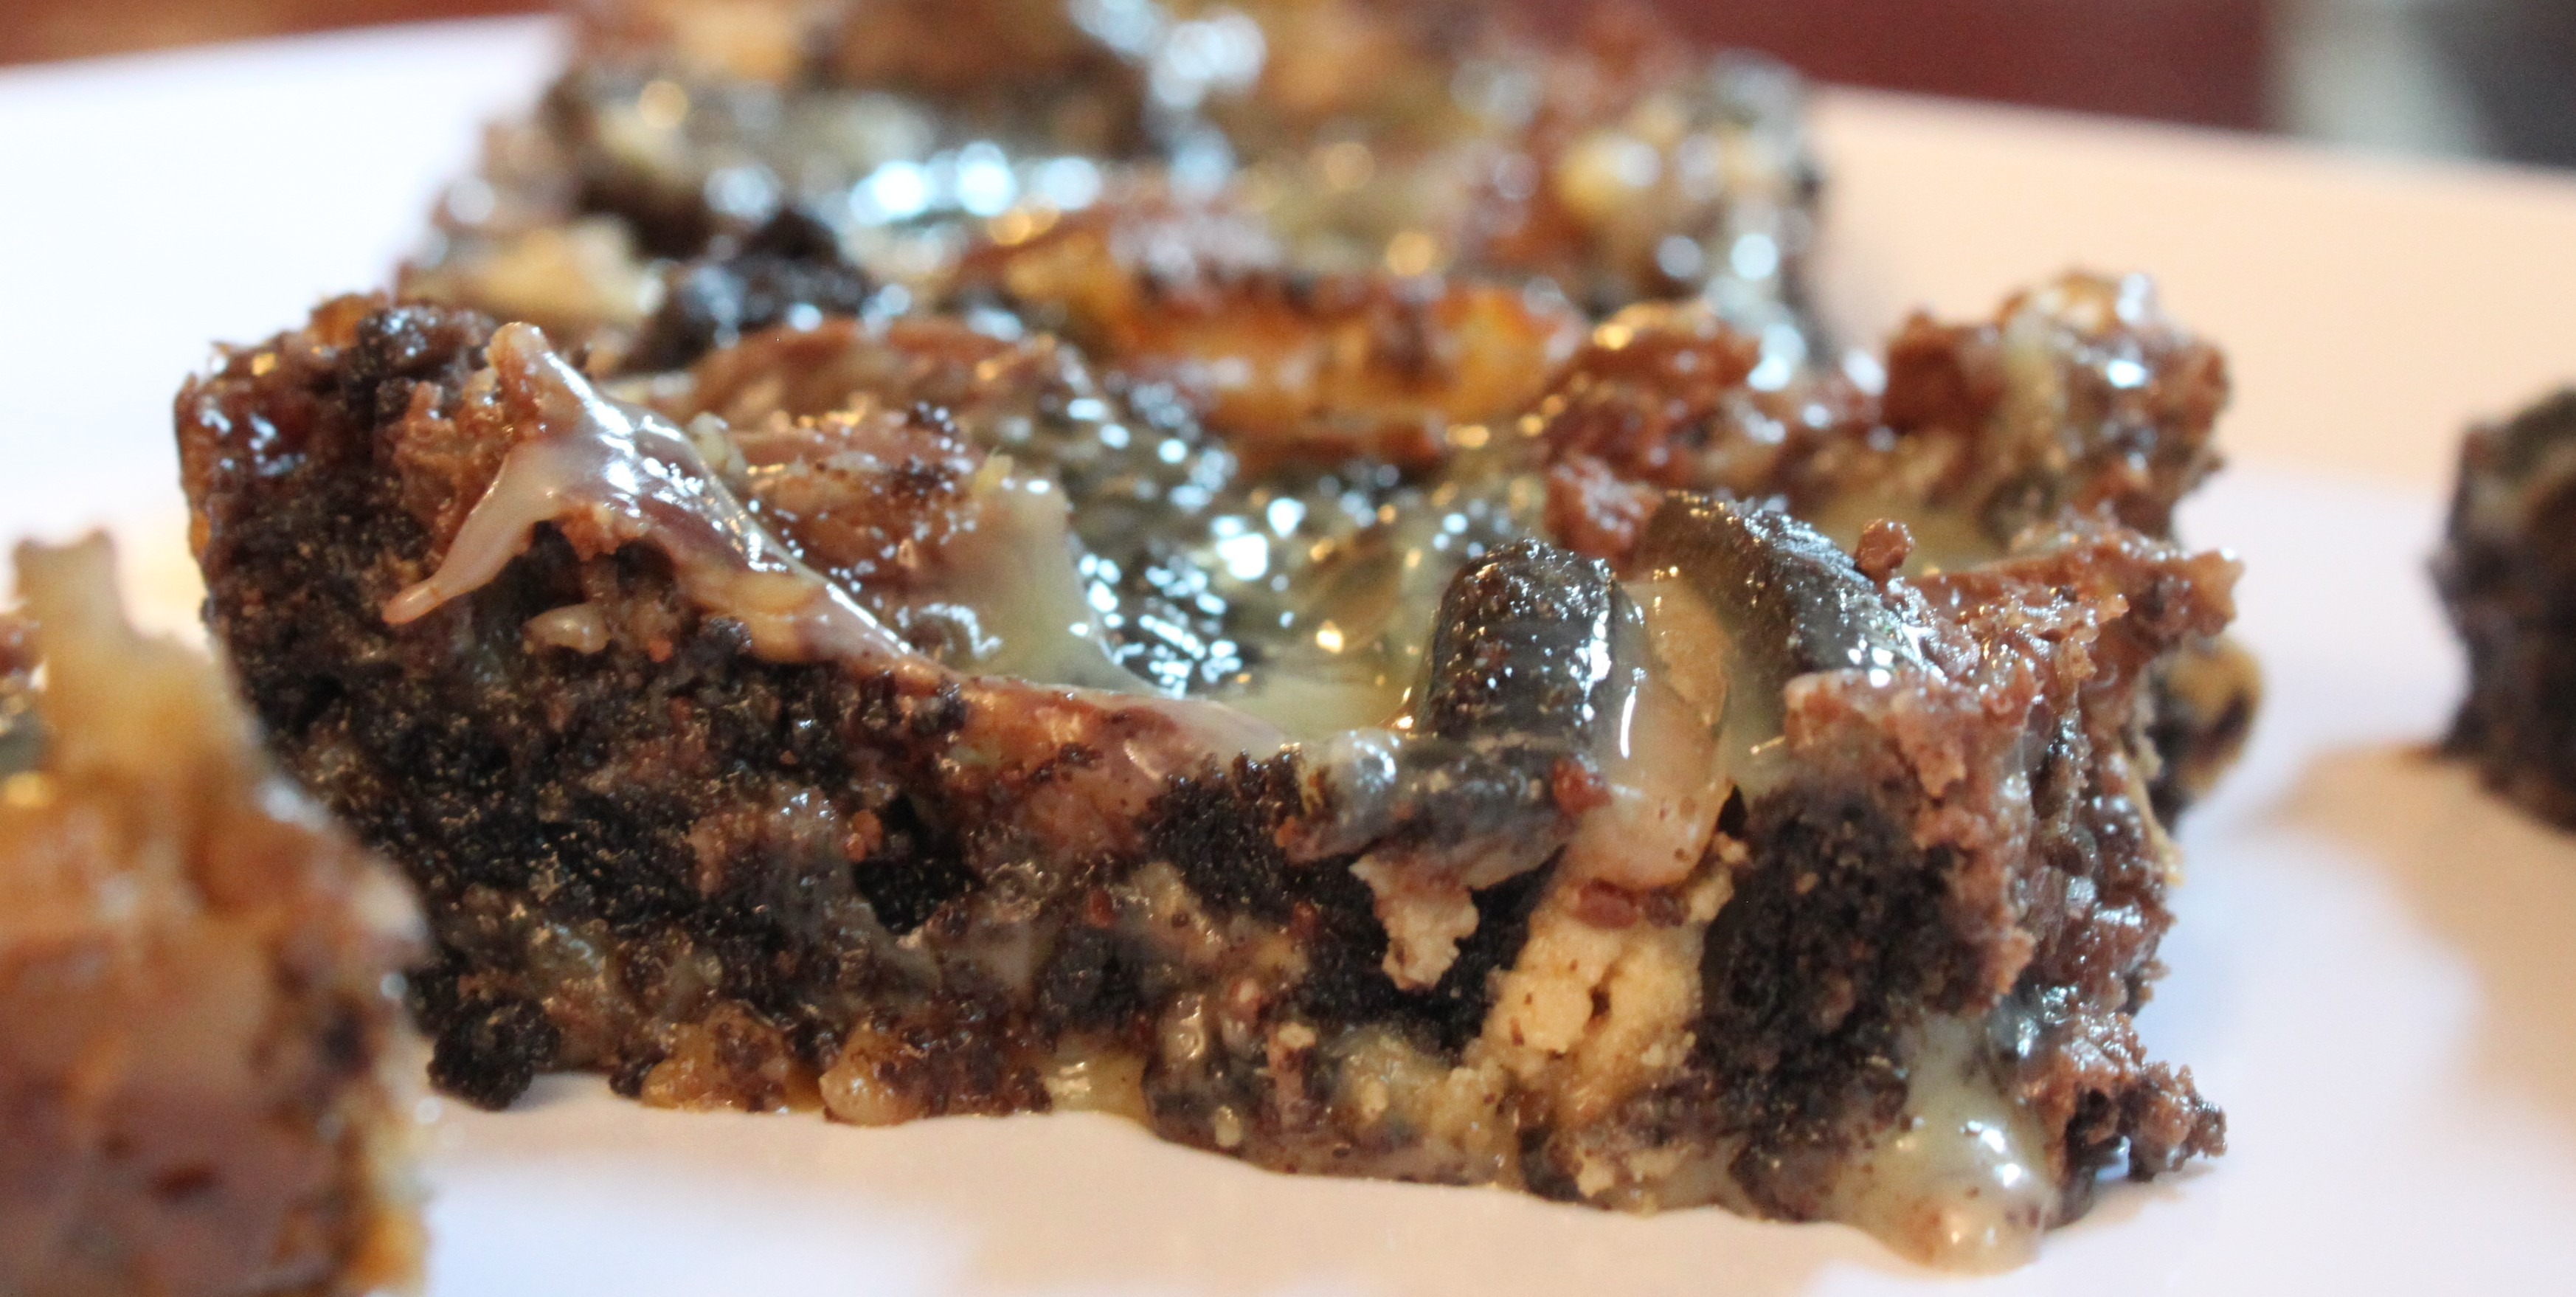 Reese's Oreo Fun Bars